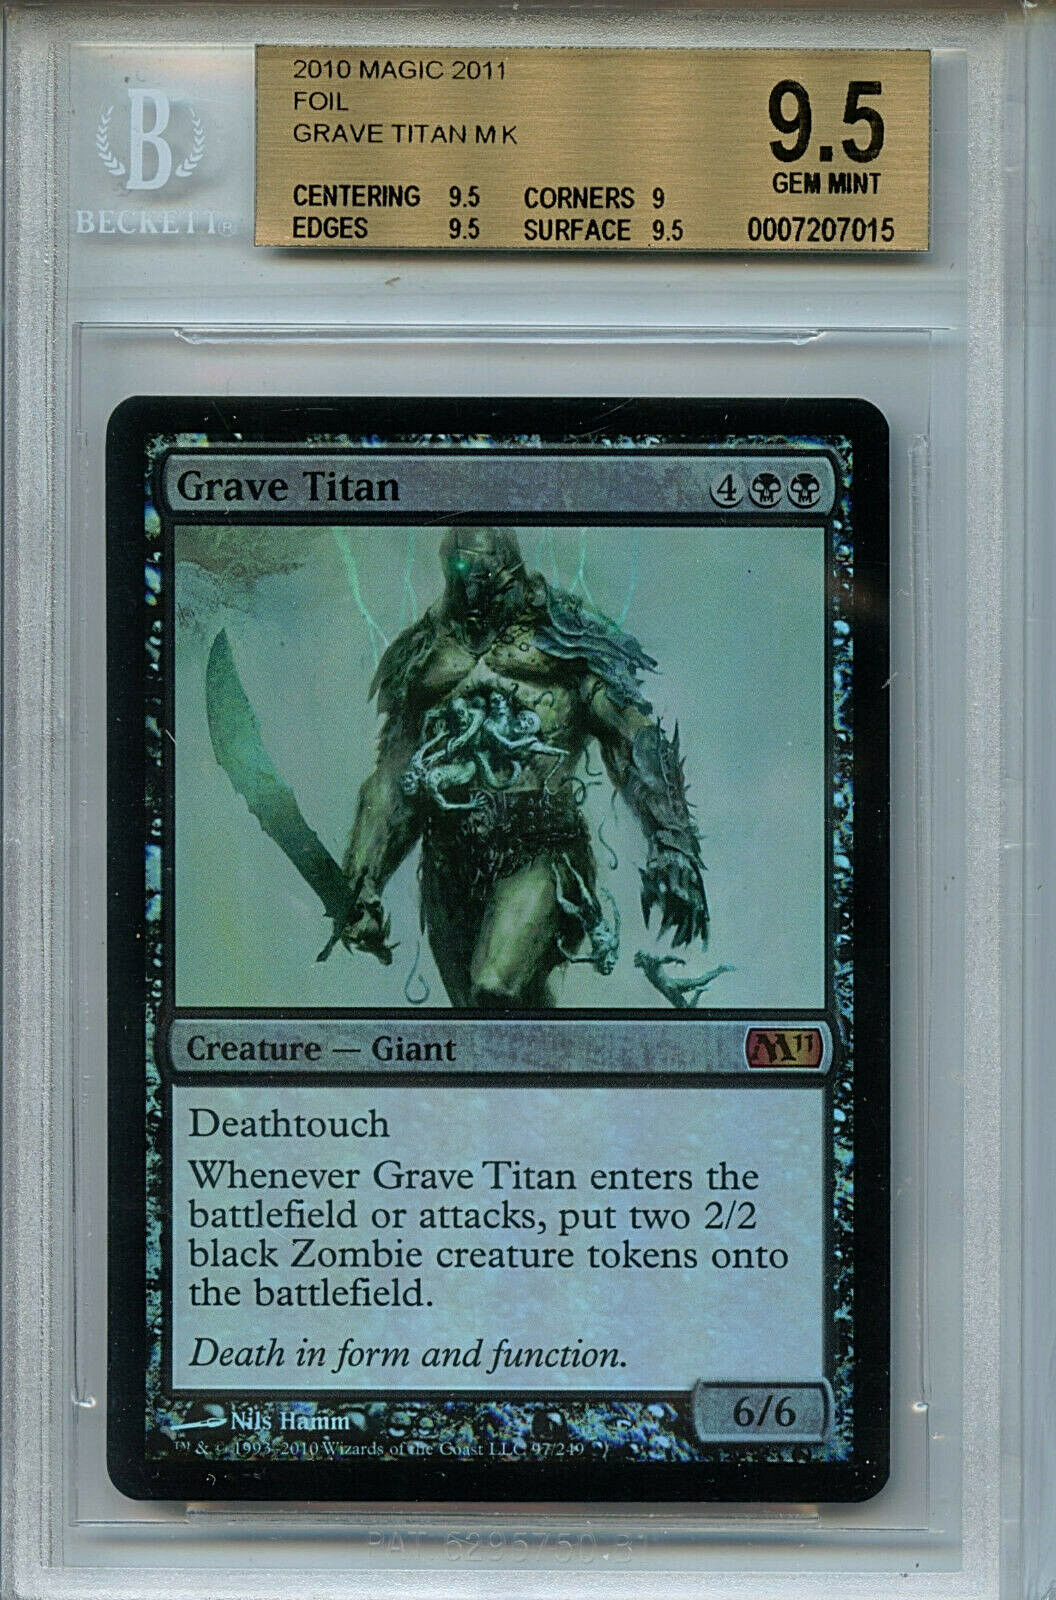 MTG Grave Titan BGS 9.5 Gem Mt MTG 2011 Foil Magic Card Amricons 7015